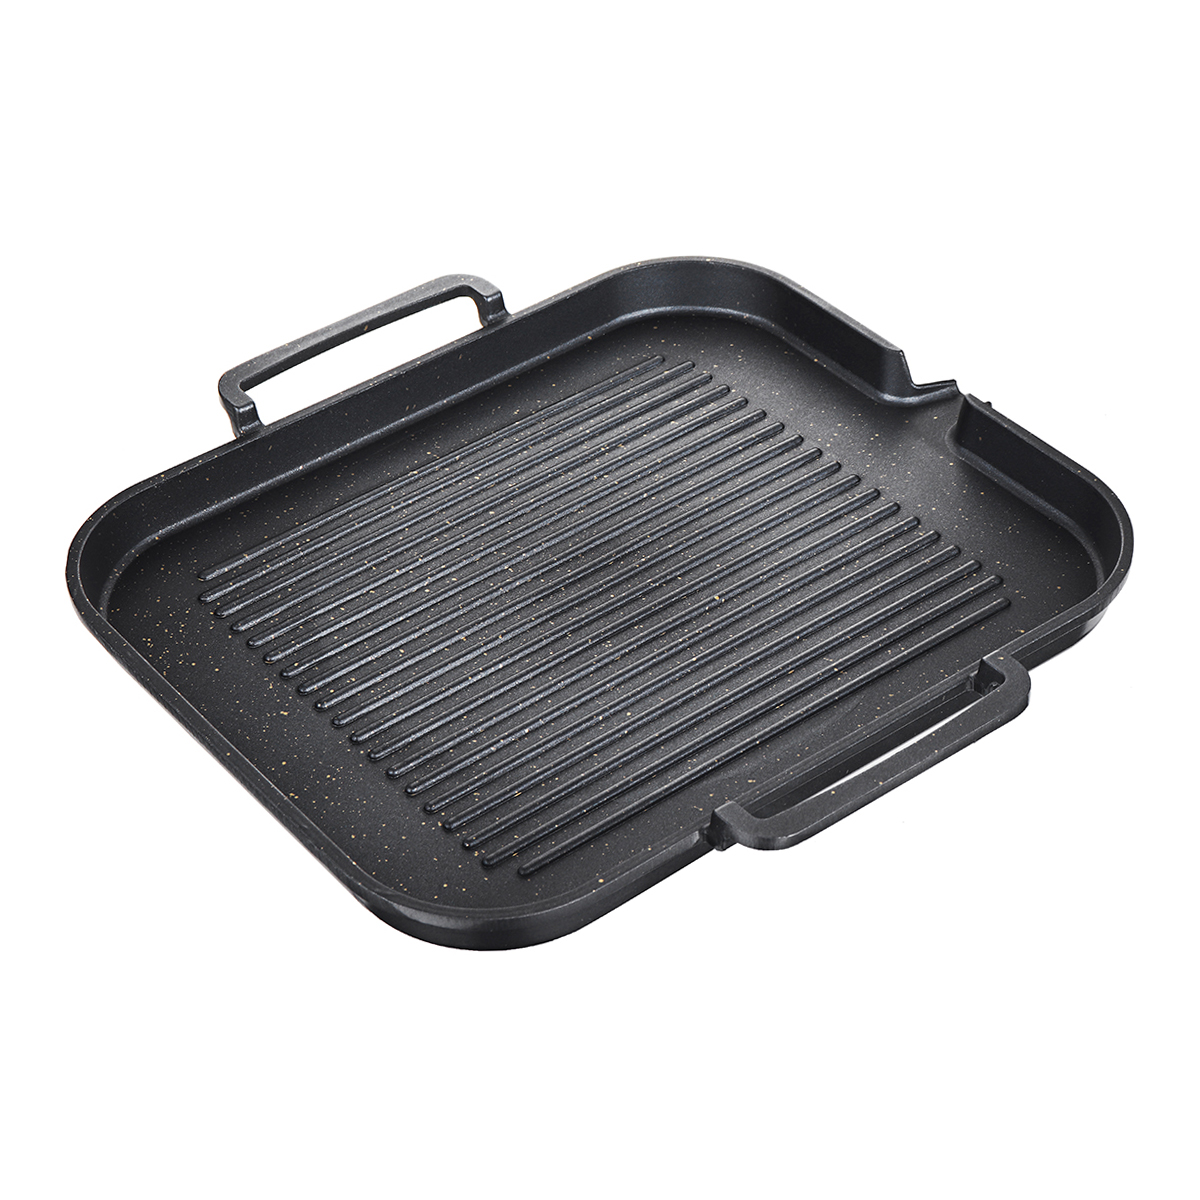 Grill Frying Pan Us 27 04 49 Off Kitchen Non Stick Cooking Grill Pan Griddle Steak Frying Pan Aluminum Alloy Bbq Grill Pan Camping Picnic Cookware Cooking Tools In